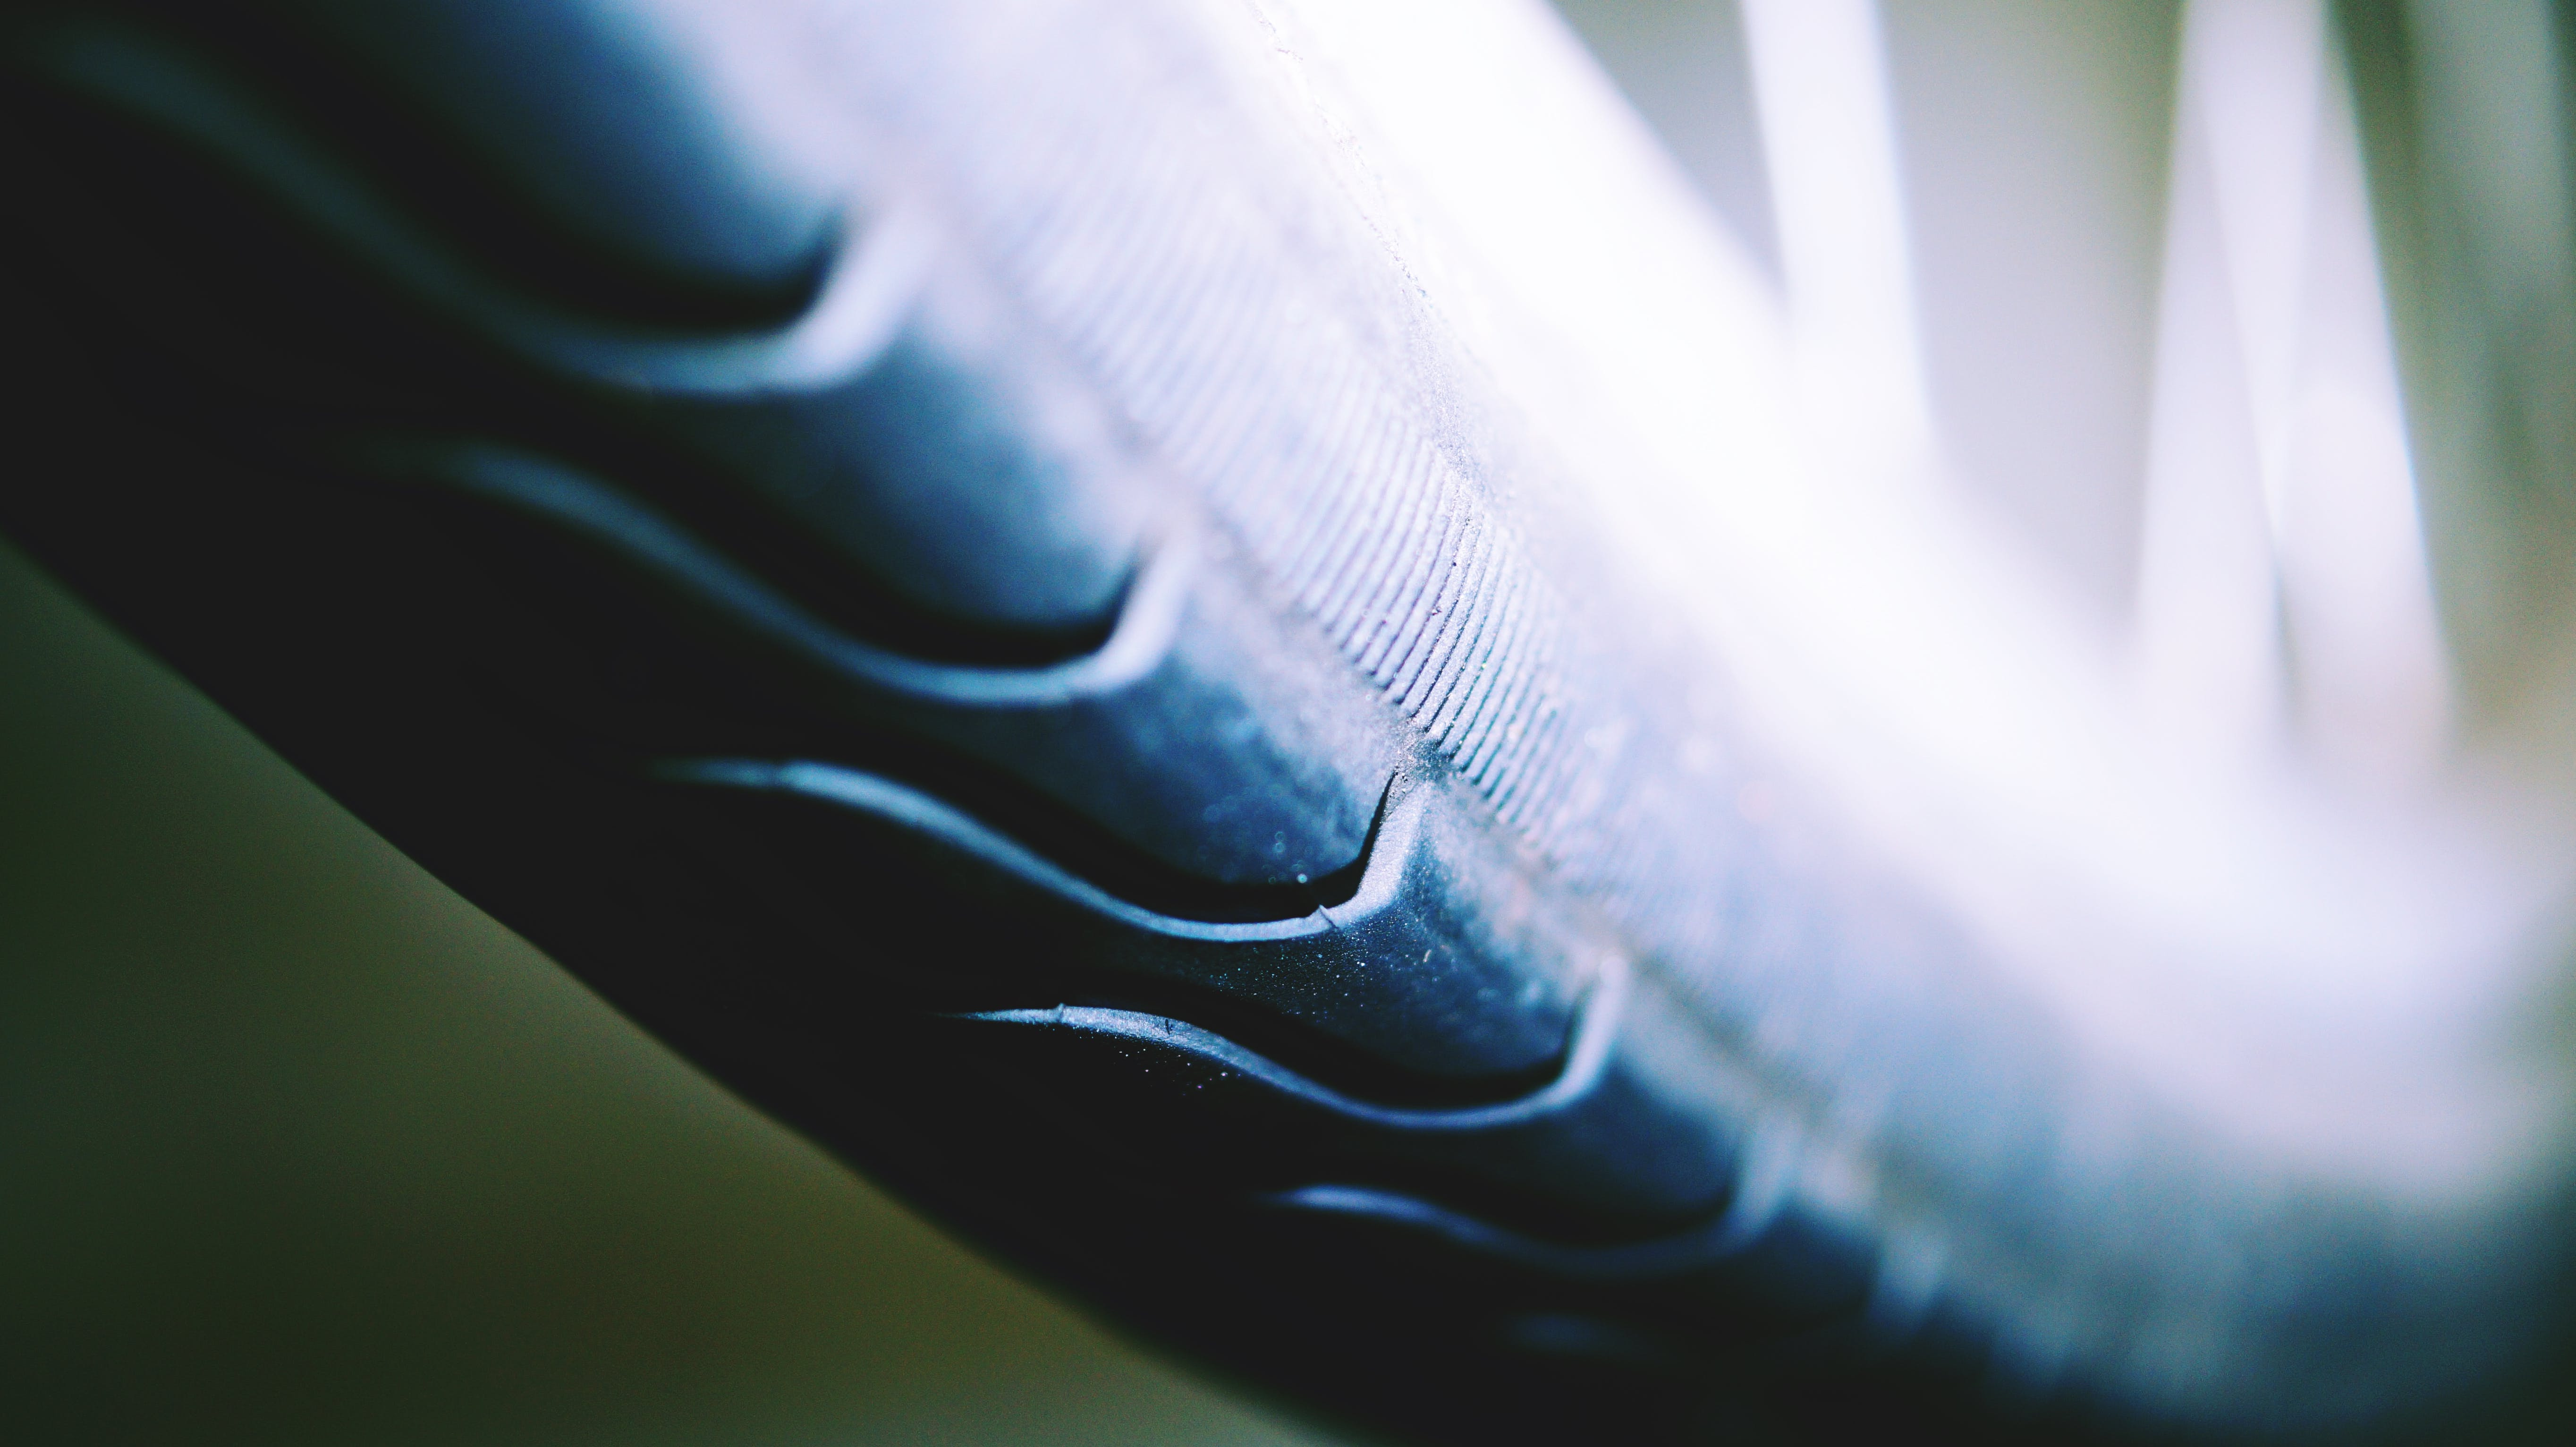 Free stock photo of bicycle, bicycle tire, close-up view, macro photography